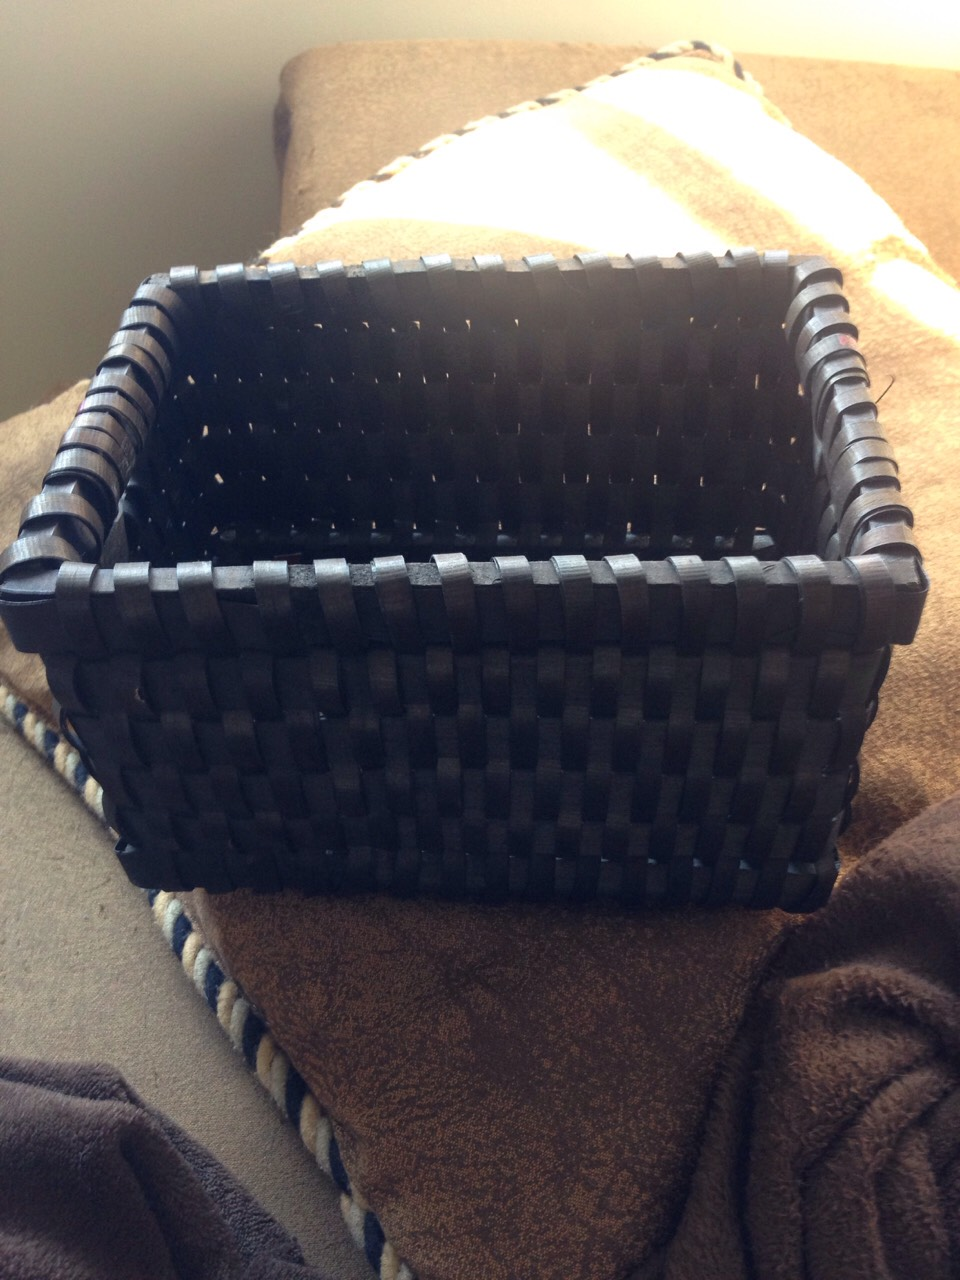 Take your basket. I used a wicker one from Walmart.